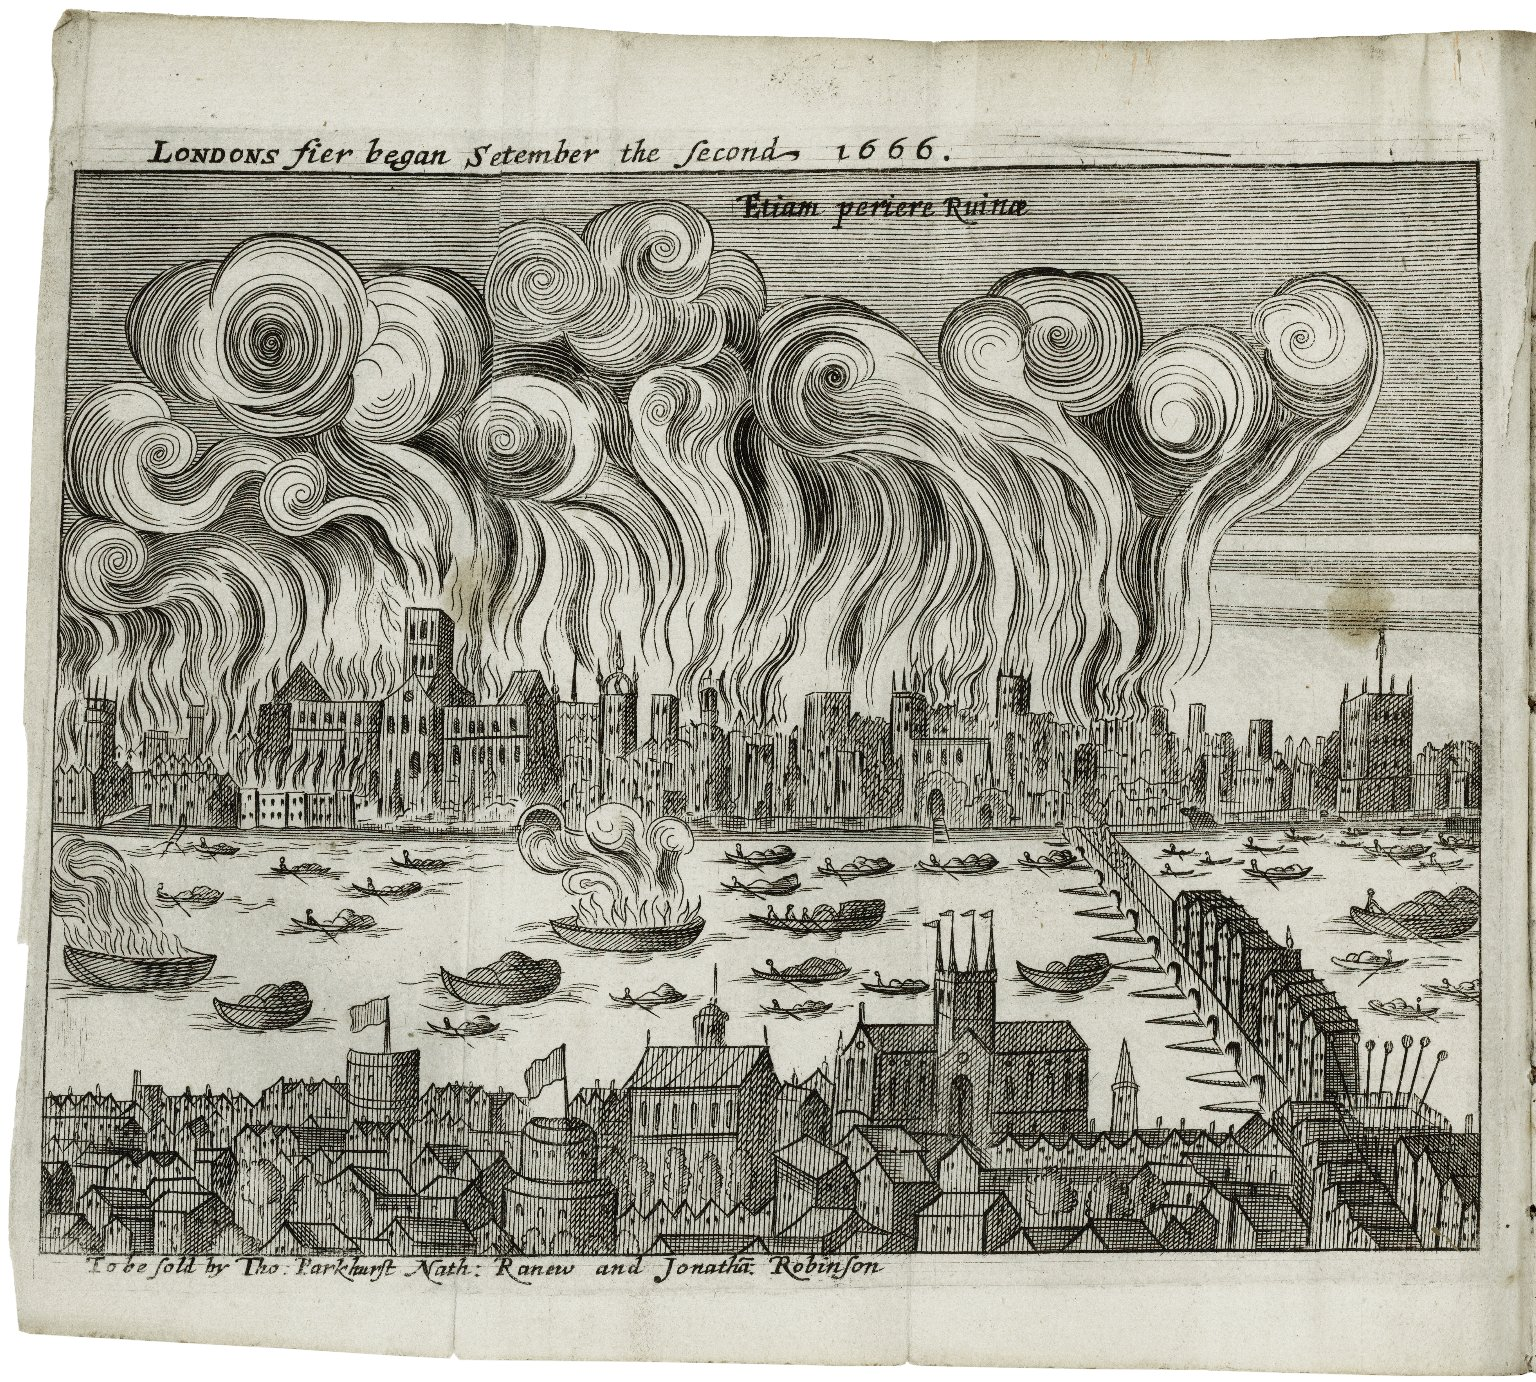 Londons Fier began Setember the Second 1666 (Samuel Rolle). Image courtesy of the Folger Digital Image Collection.